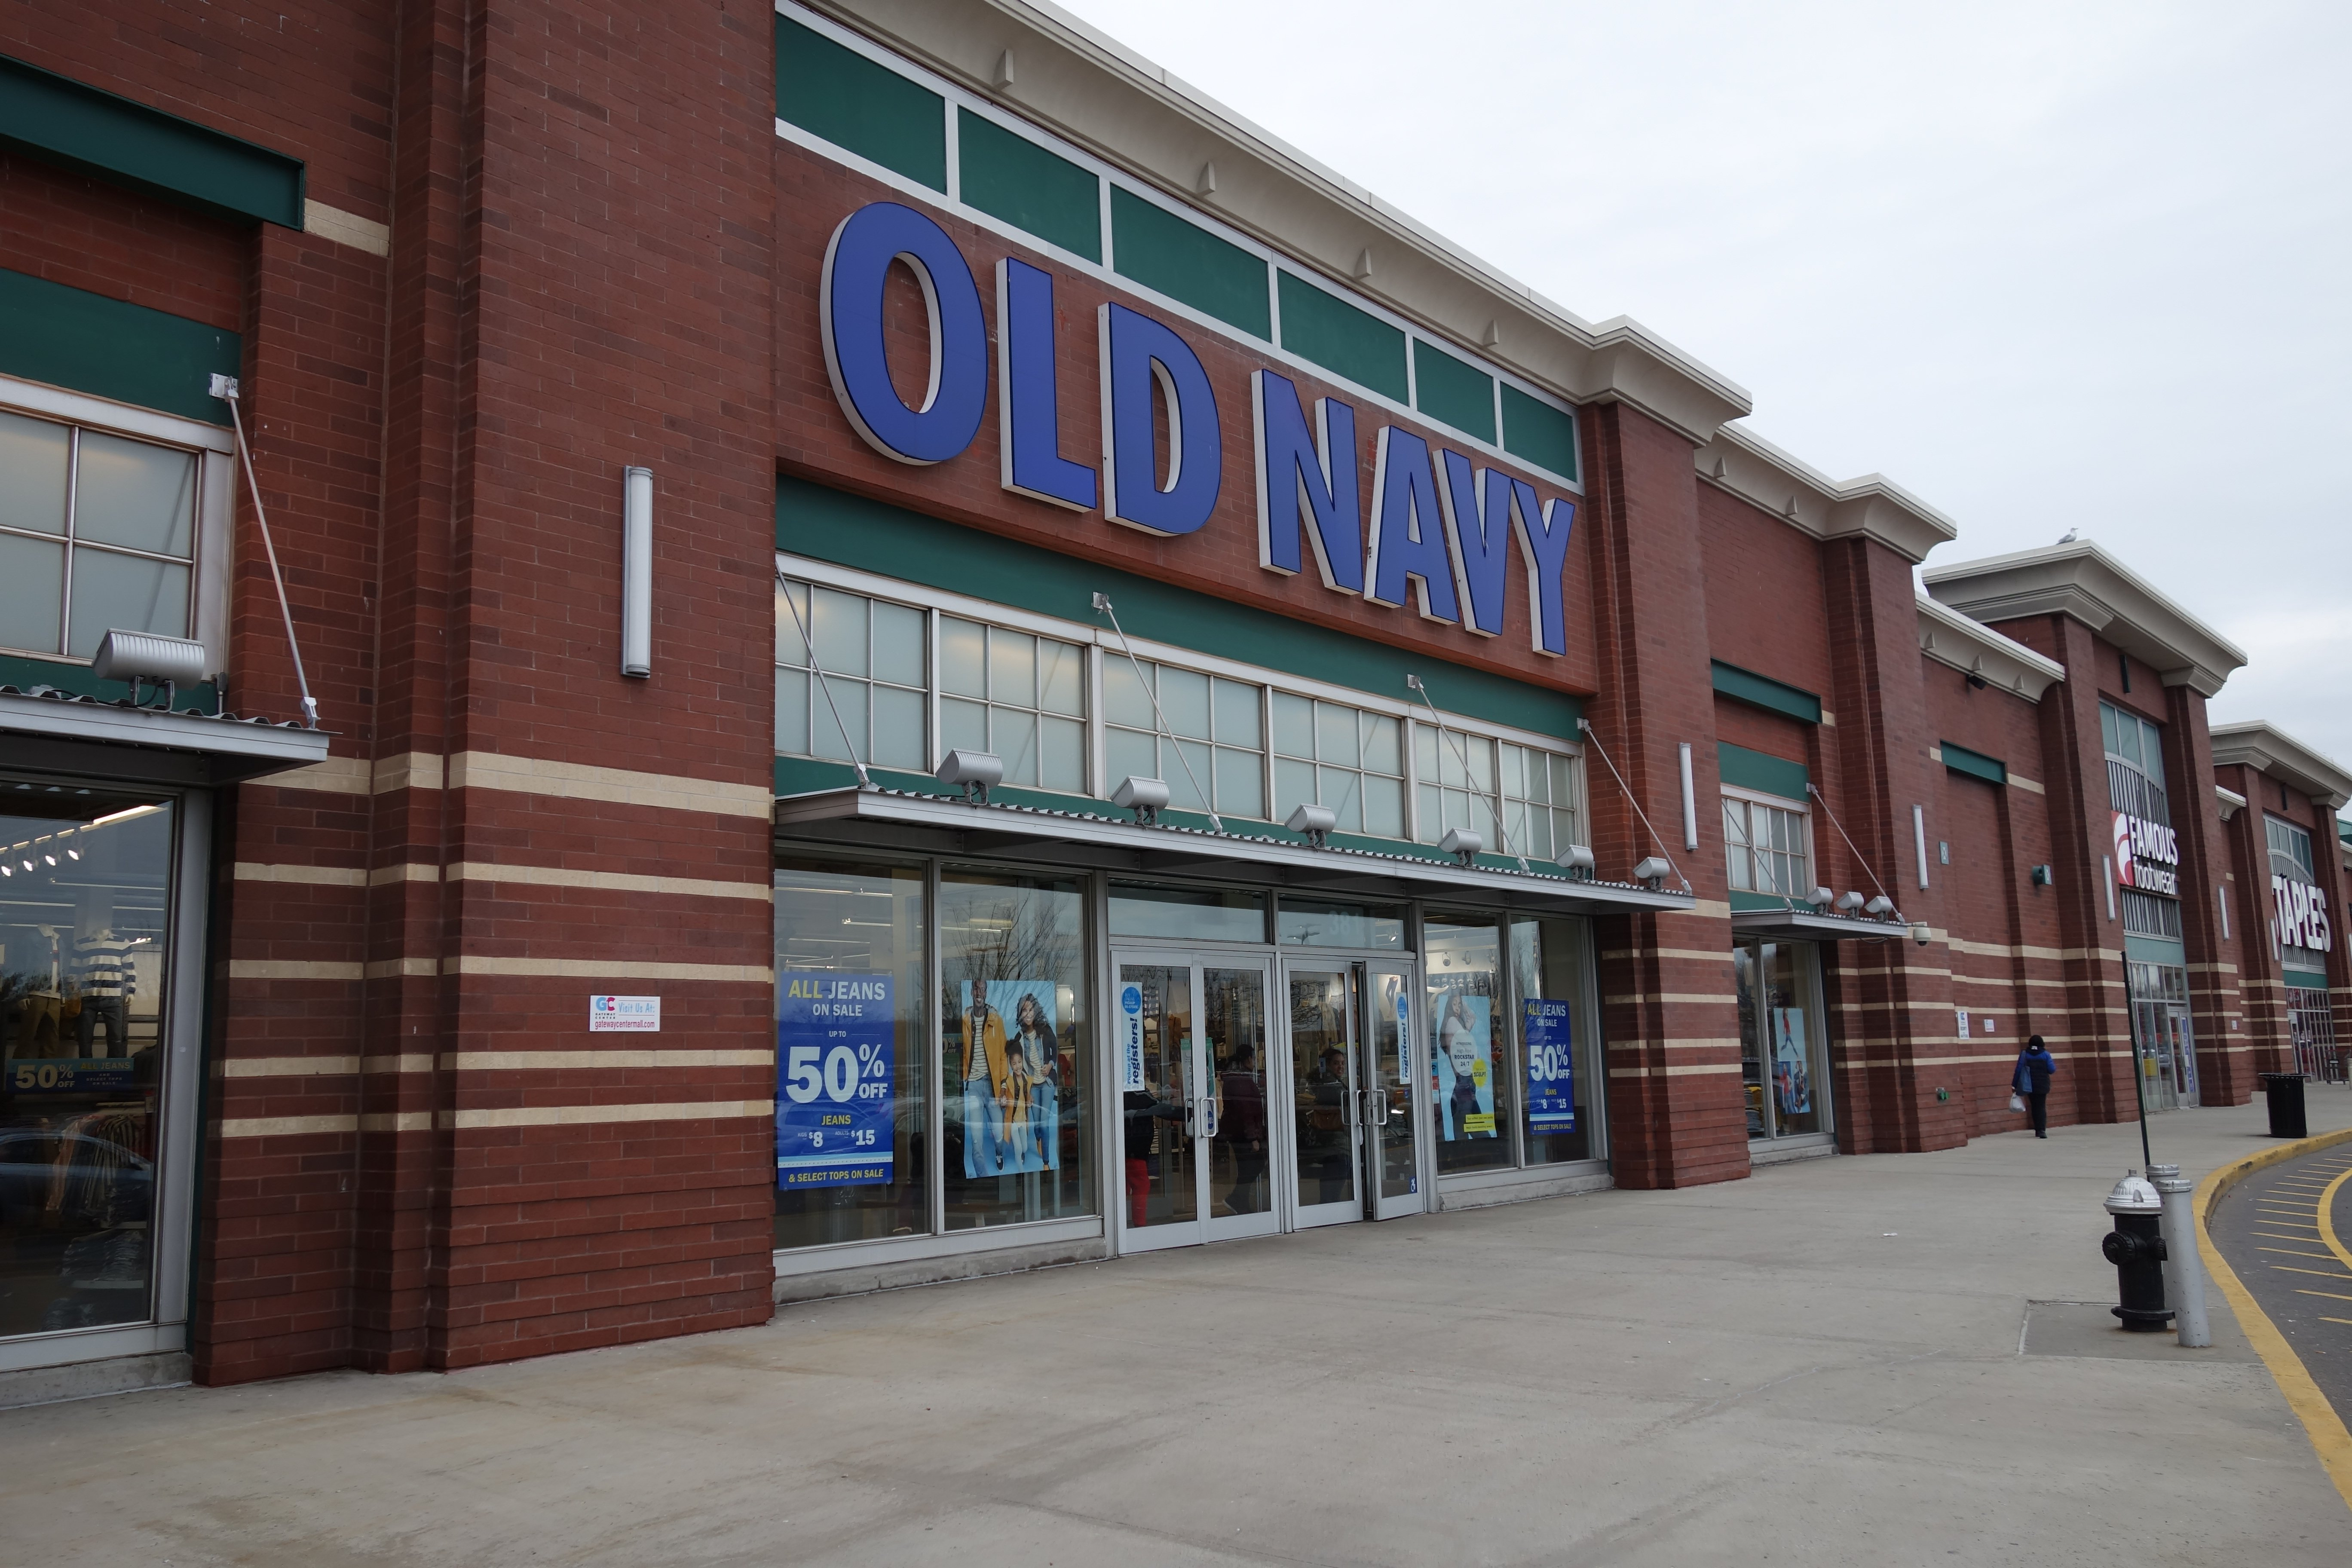 The Old Navy store of the Gateway Center South mall, on Gateway Plaza west of Erskine Street in Spring Creek, Brooklyn. | Source: Wikimedia Commons